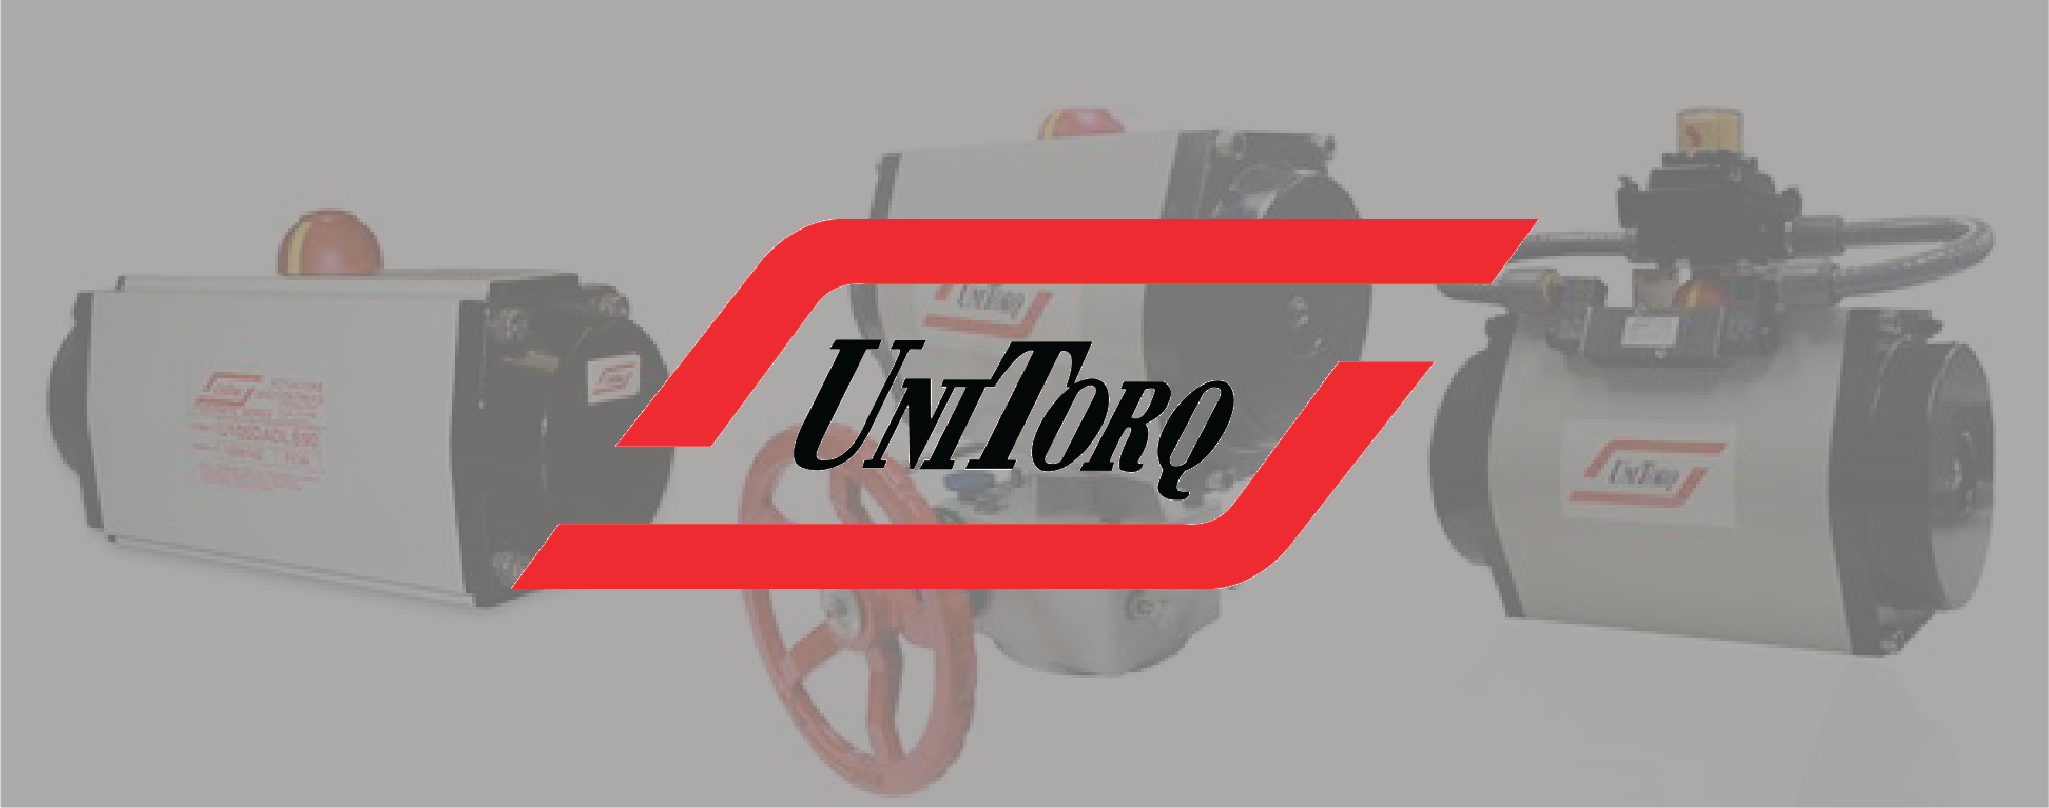 Unitorq Featured Image (G).png